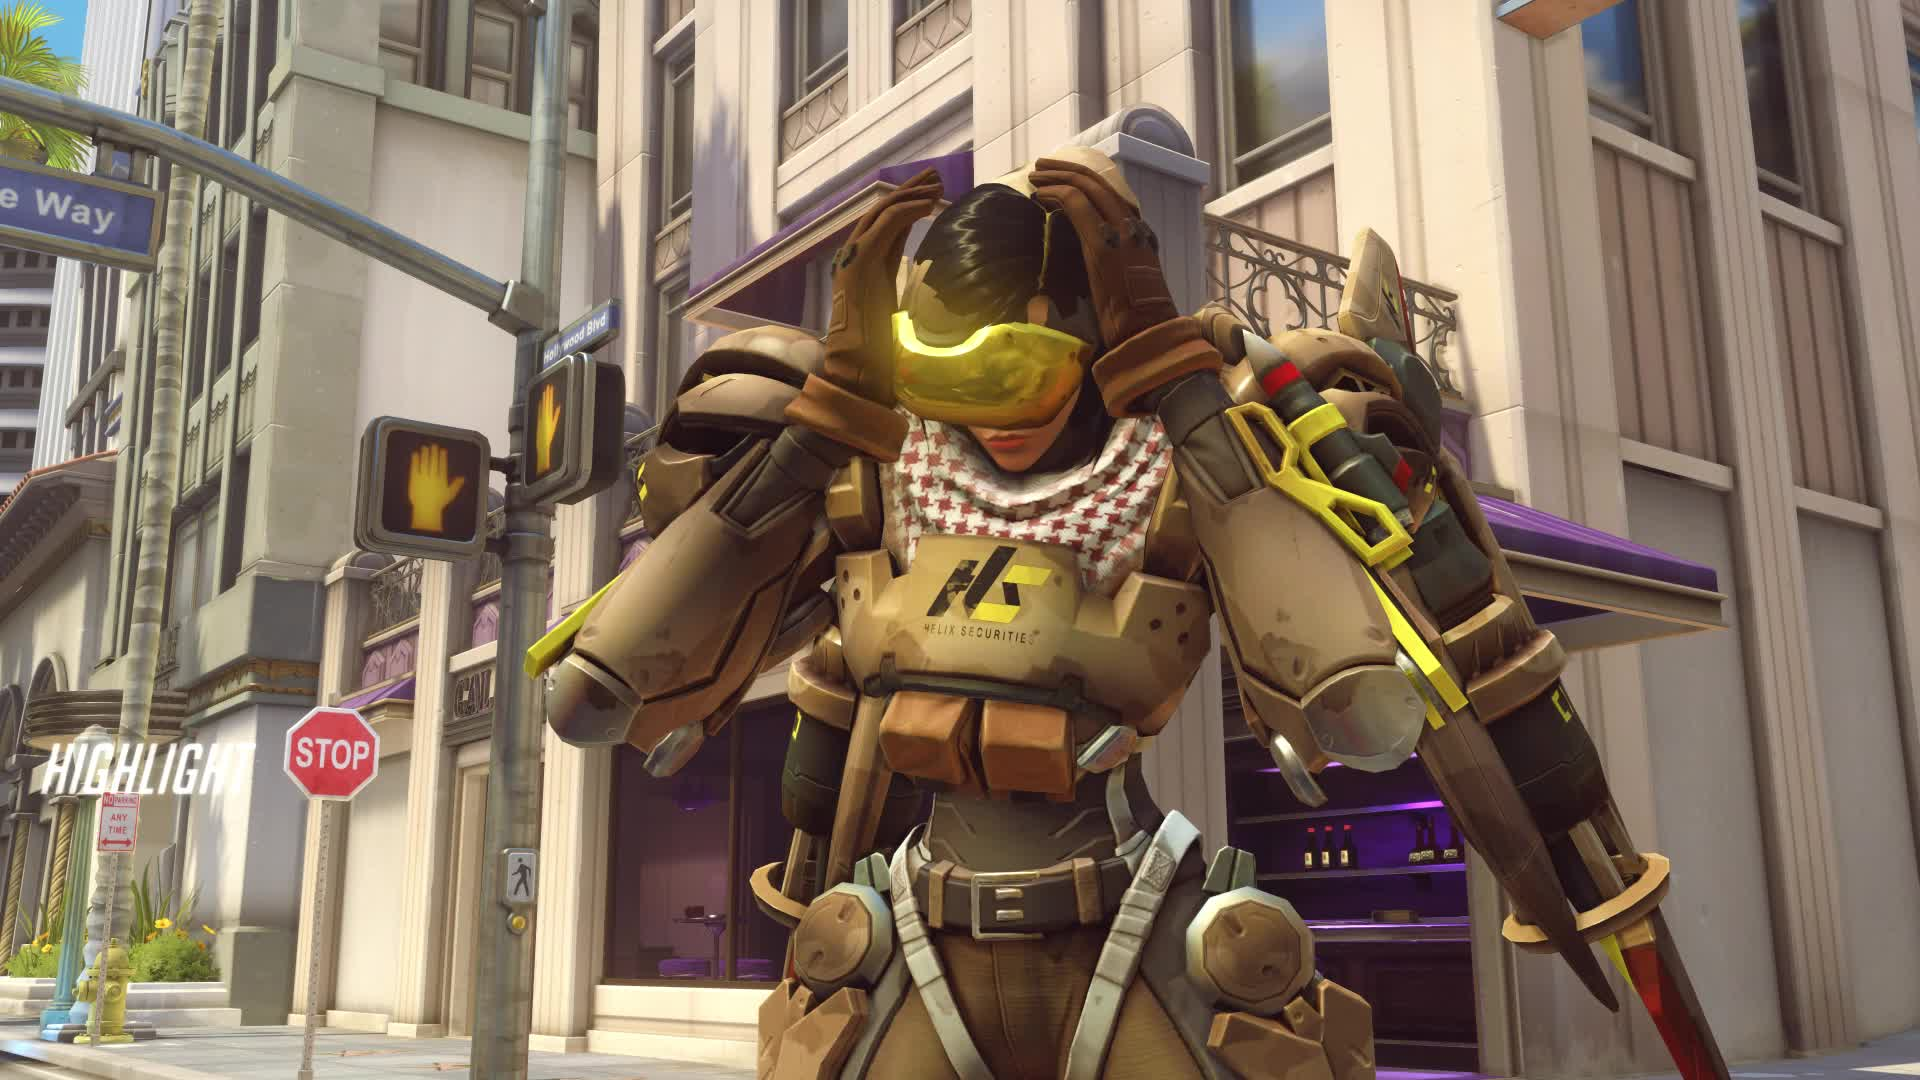 overwatch, pharah, the way i track and snap people in this game is so weird why am i like this GIFs